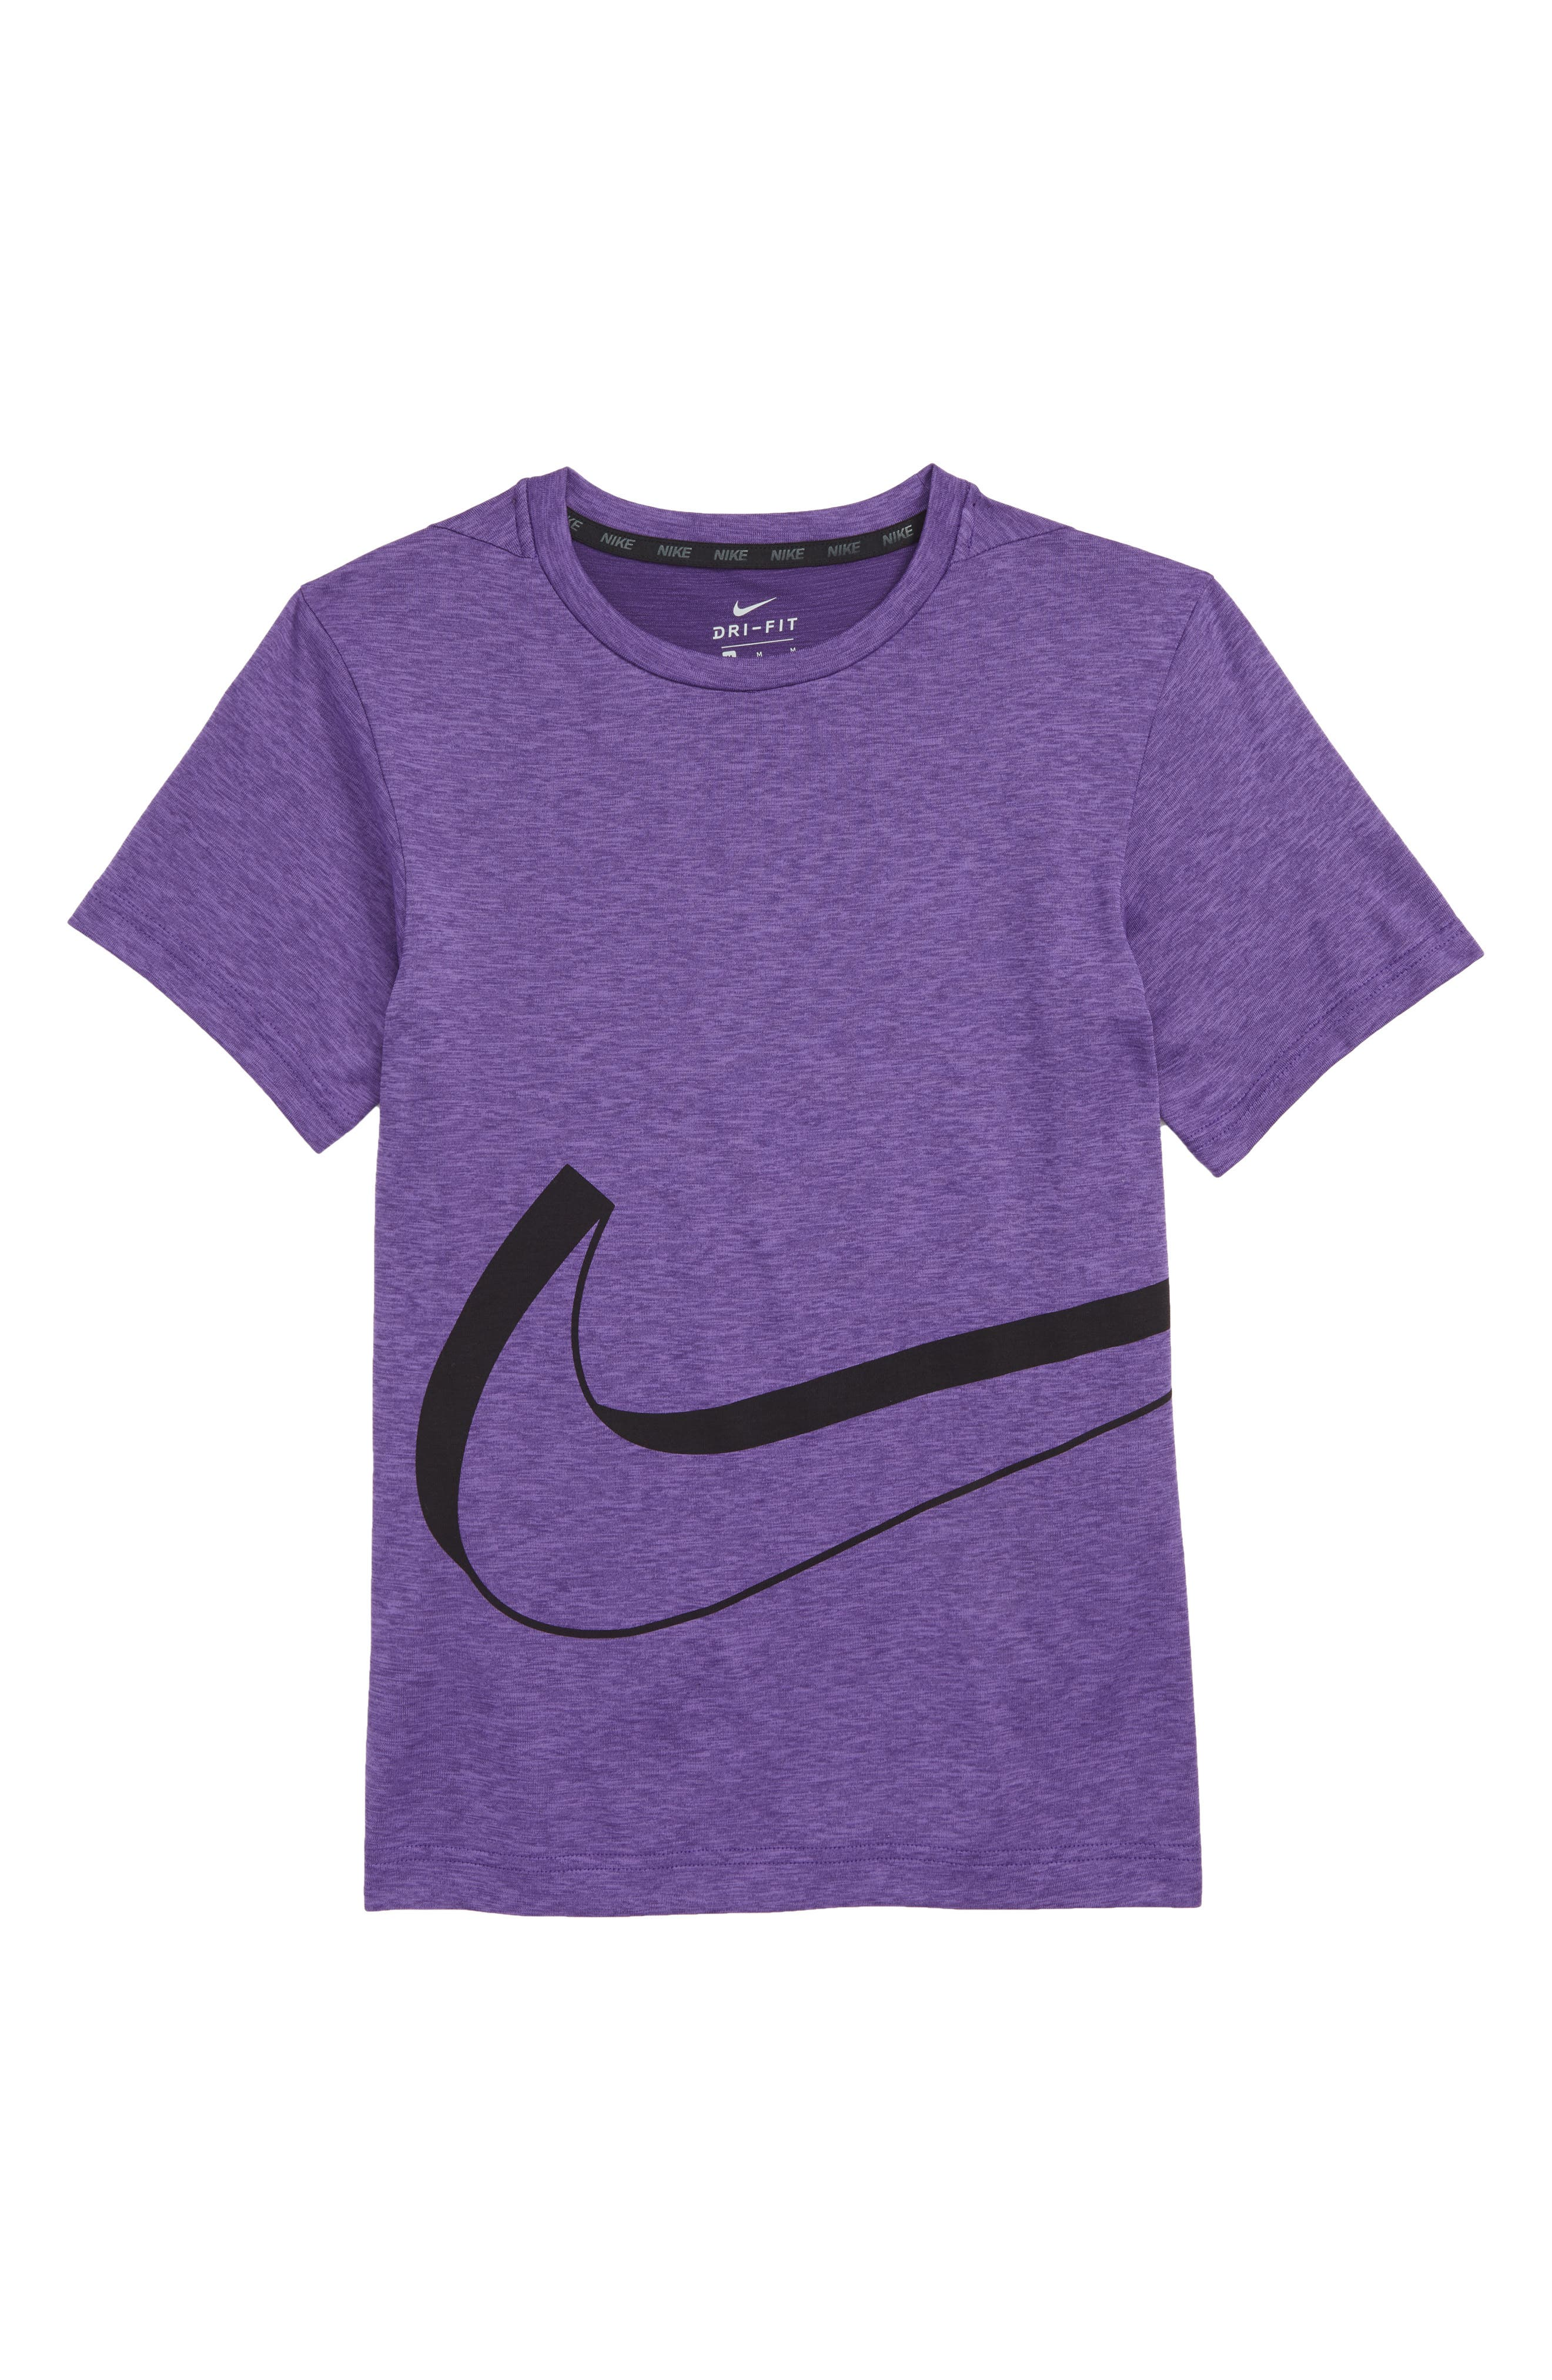 Dry Graphic T-Shirt, Main, color, COURT PURPLE/ ACTION GRAPE